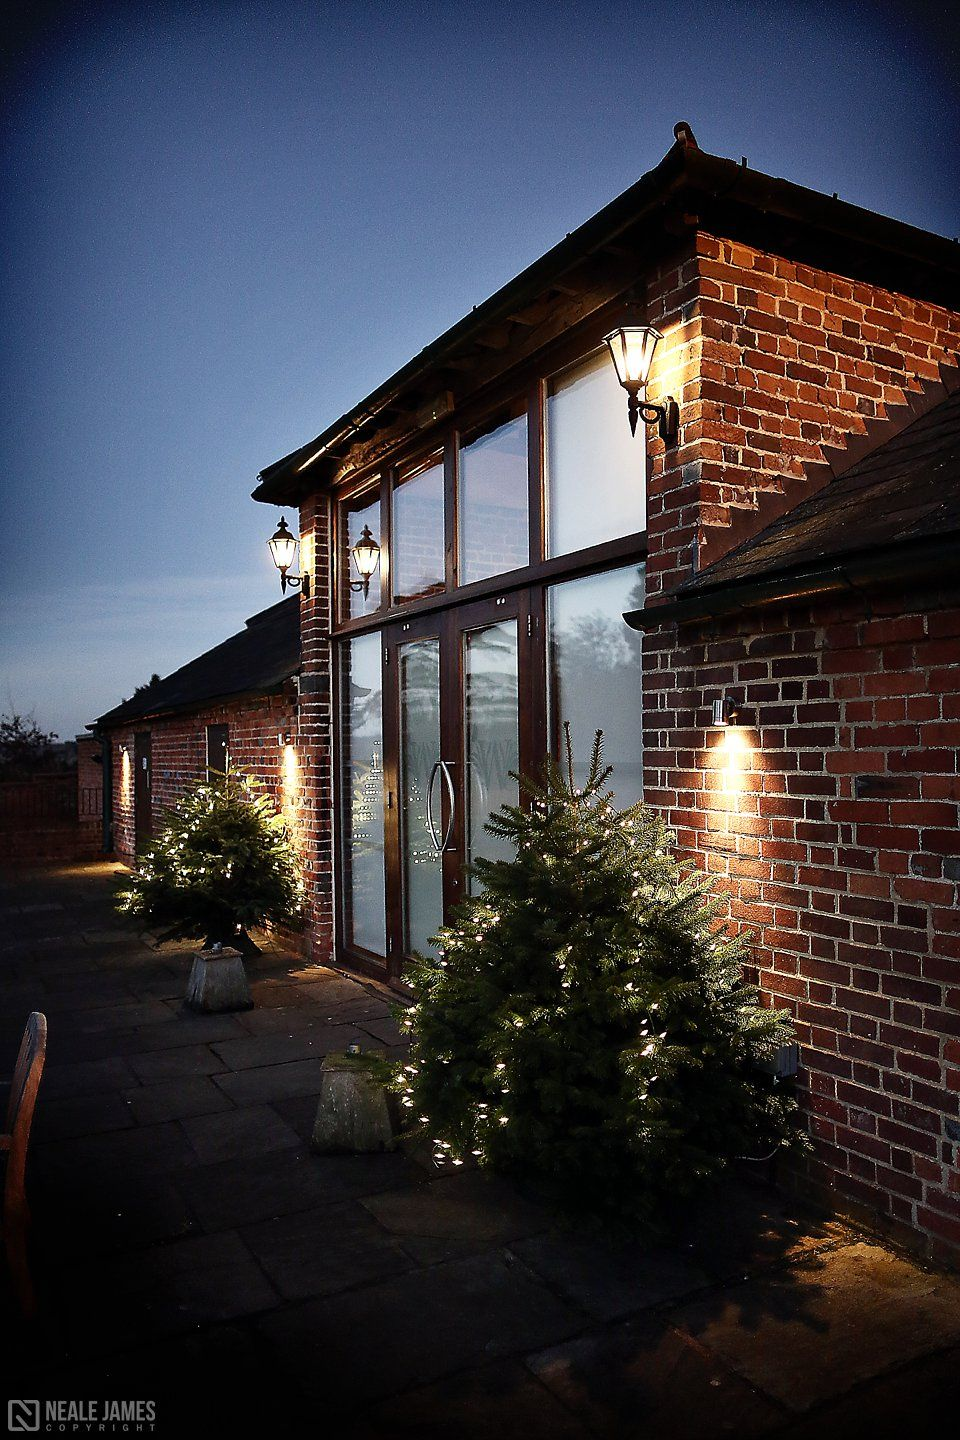 Wasing Park Barn Wedding Venue In Berkshire December Christmastree Festive